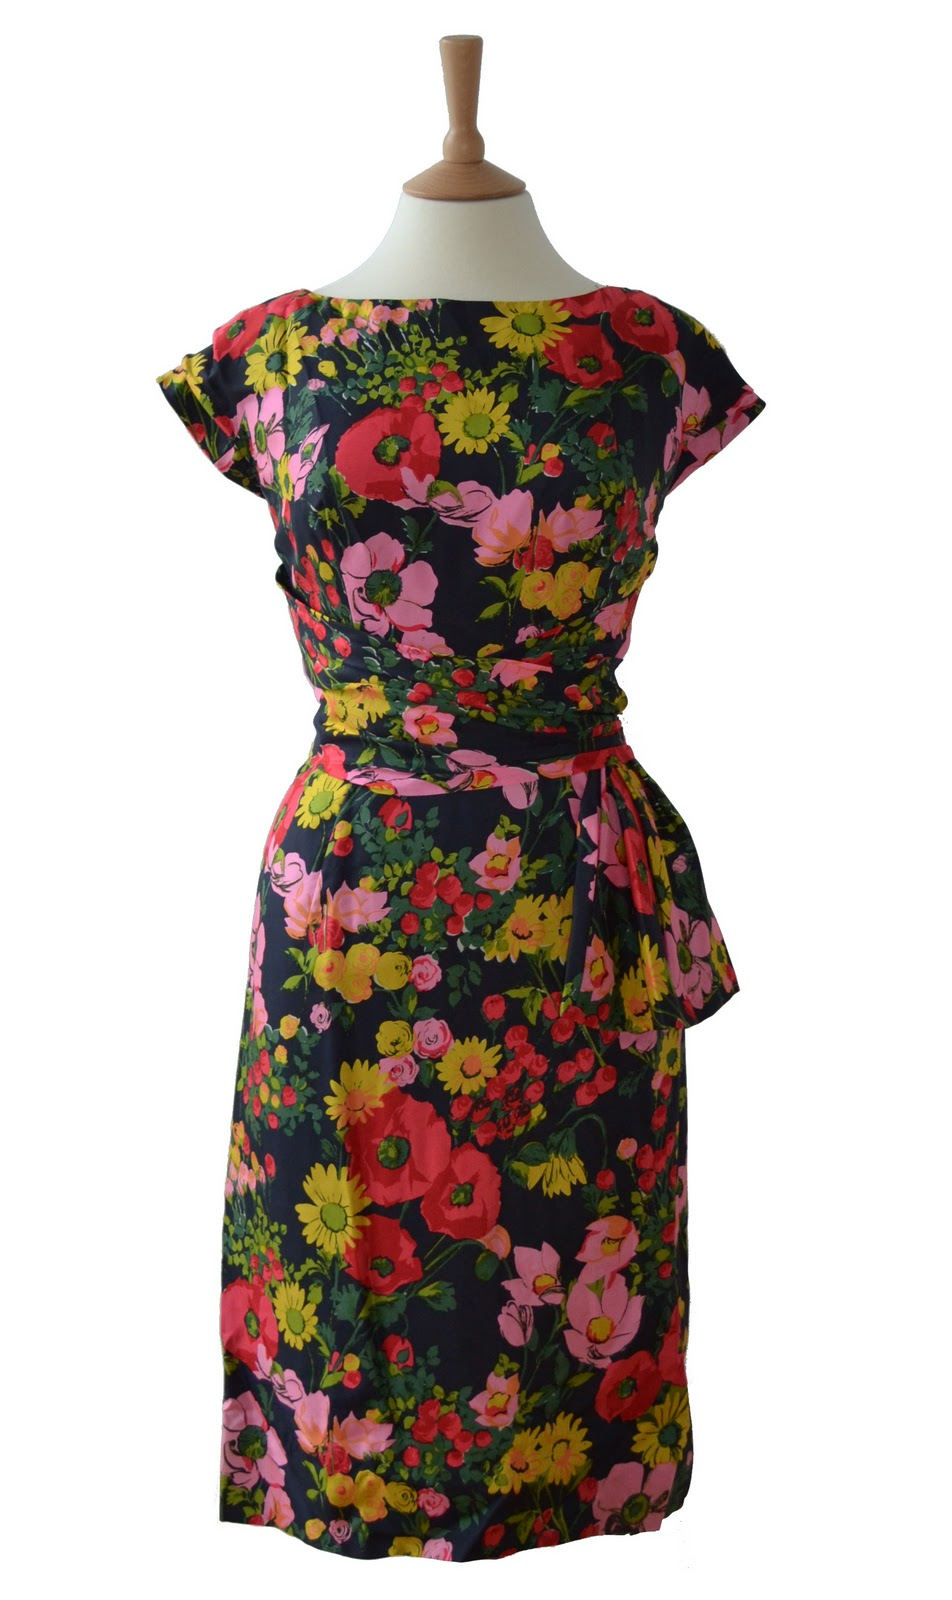 Coming soon new 1950s vintage dresses